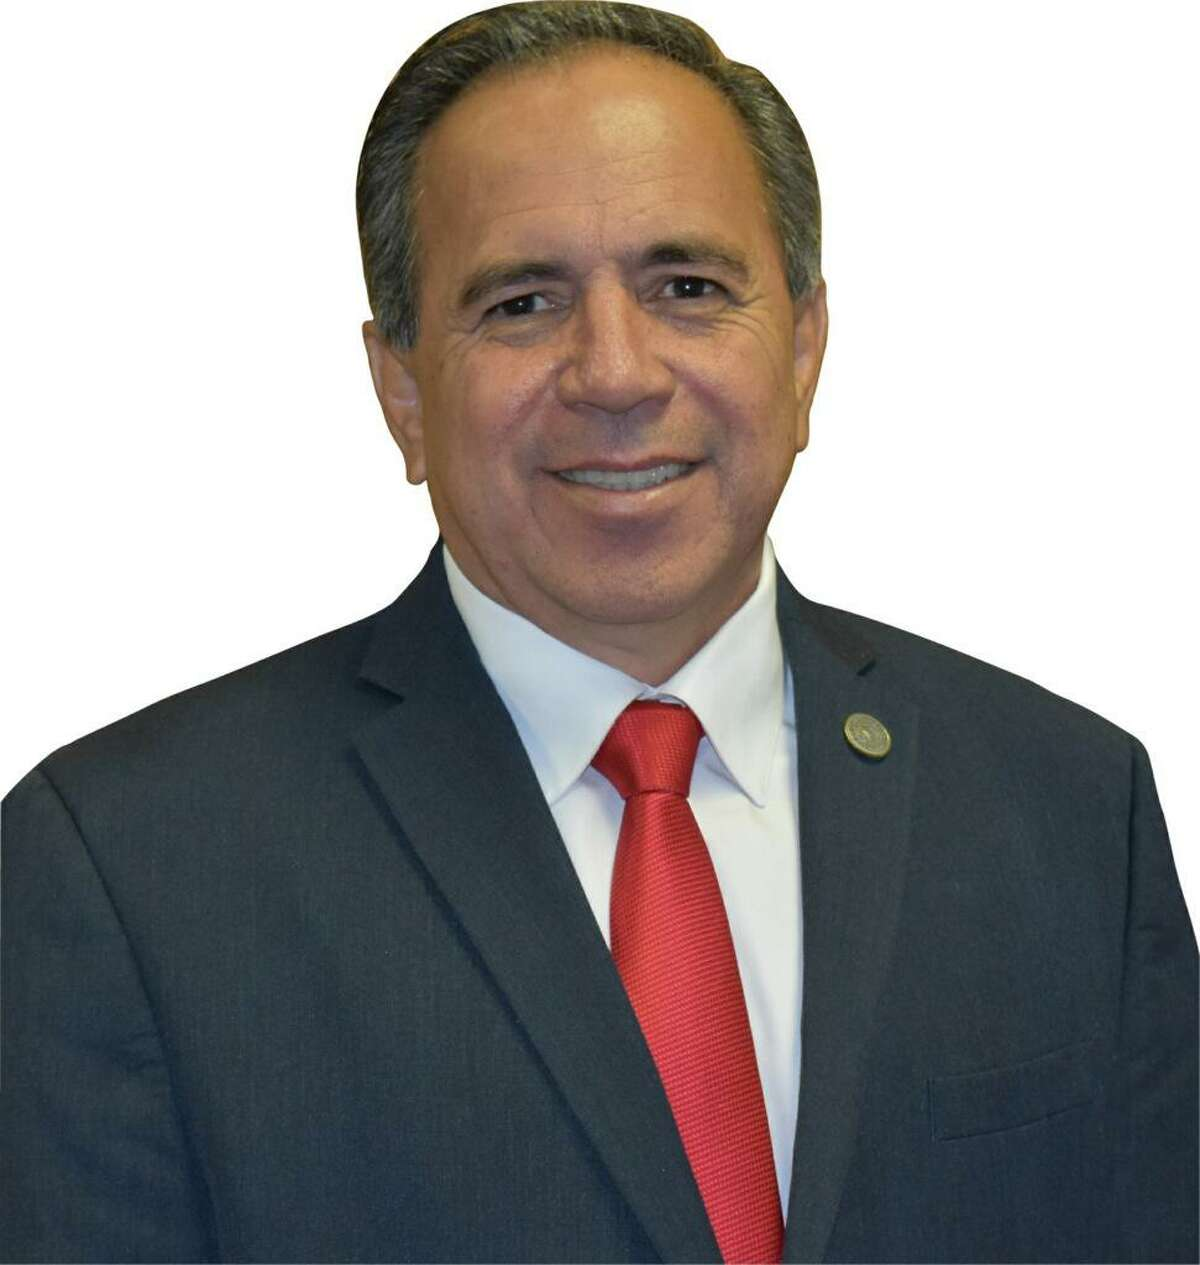 Tomas Uresti, 60, a former Texas state representative and former Harlandale ISD school board member, is in the runoff for the San Antonio City Council District 3 seat.